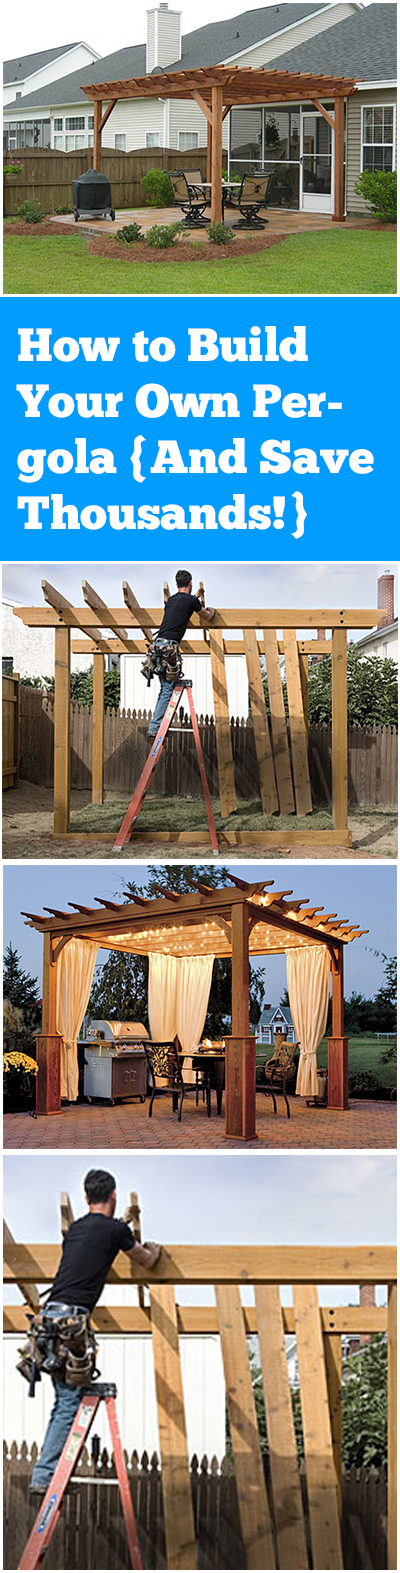 How to build your own amazing pergola and save thousands